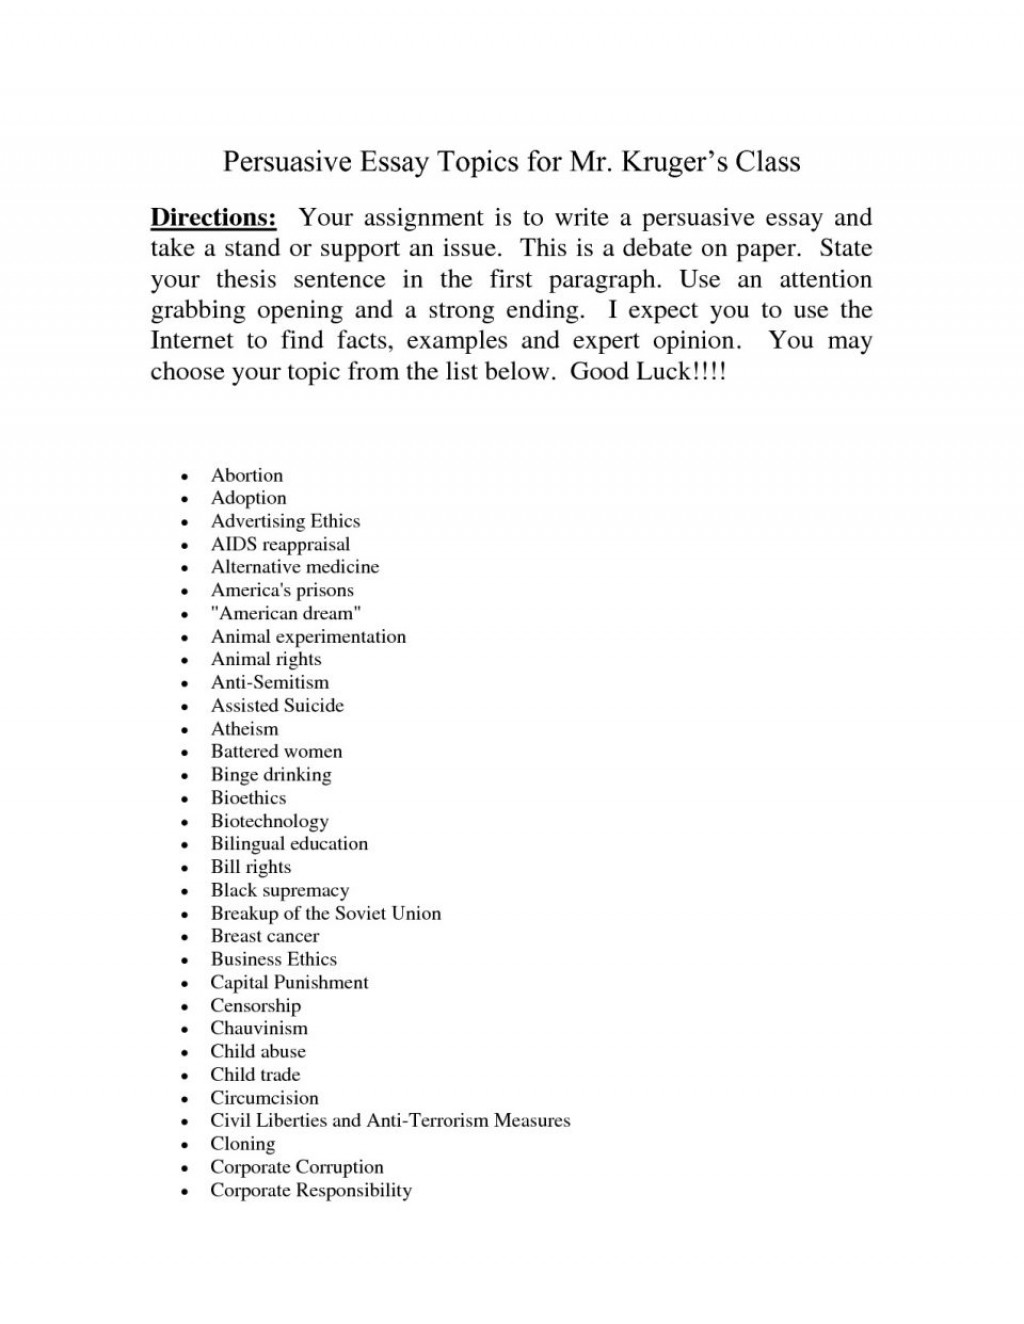 010 Topics Forlege Research Papers Topic Essay Barca Fontanacountryinn Within Good Persuasive Narrative To Write Abo Easy About Personal Descriptive Paper Informative Synthesis Stirring For College Controversial Debatable Large